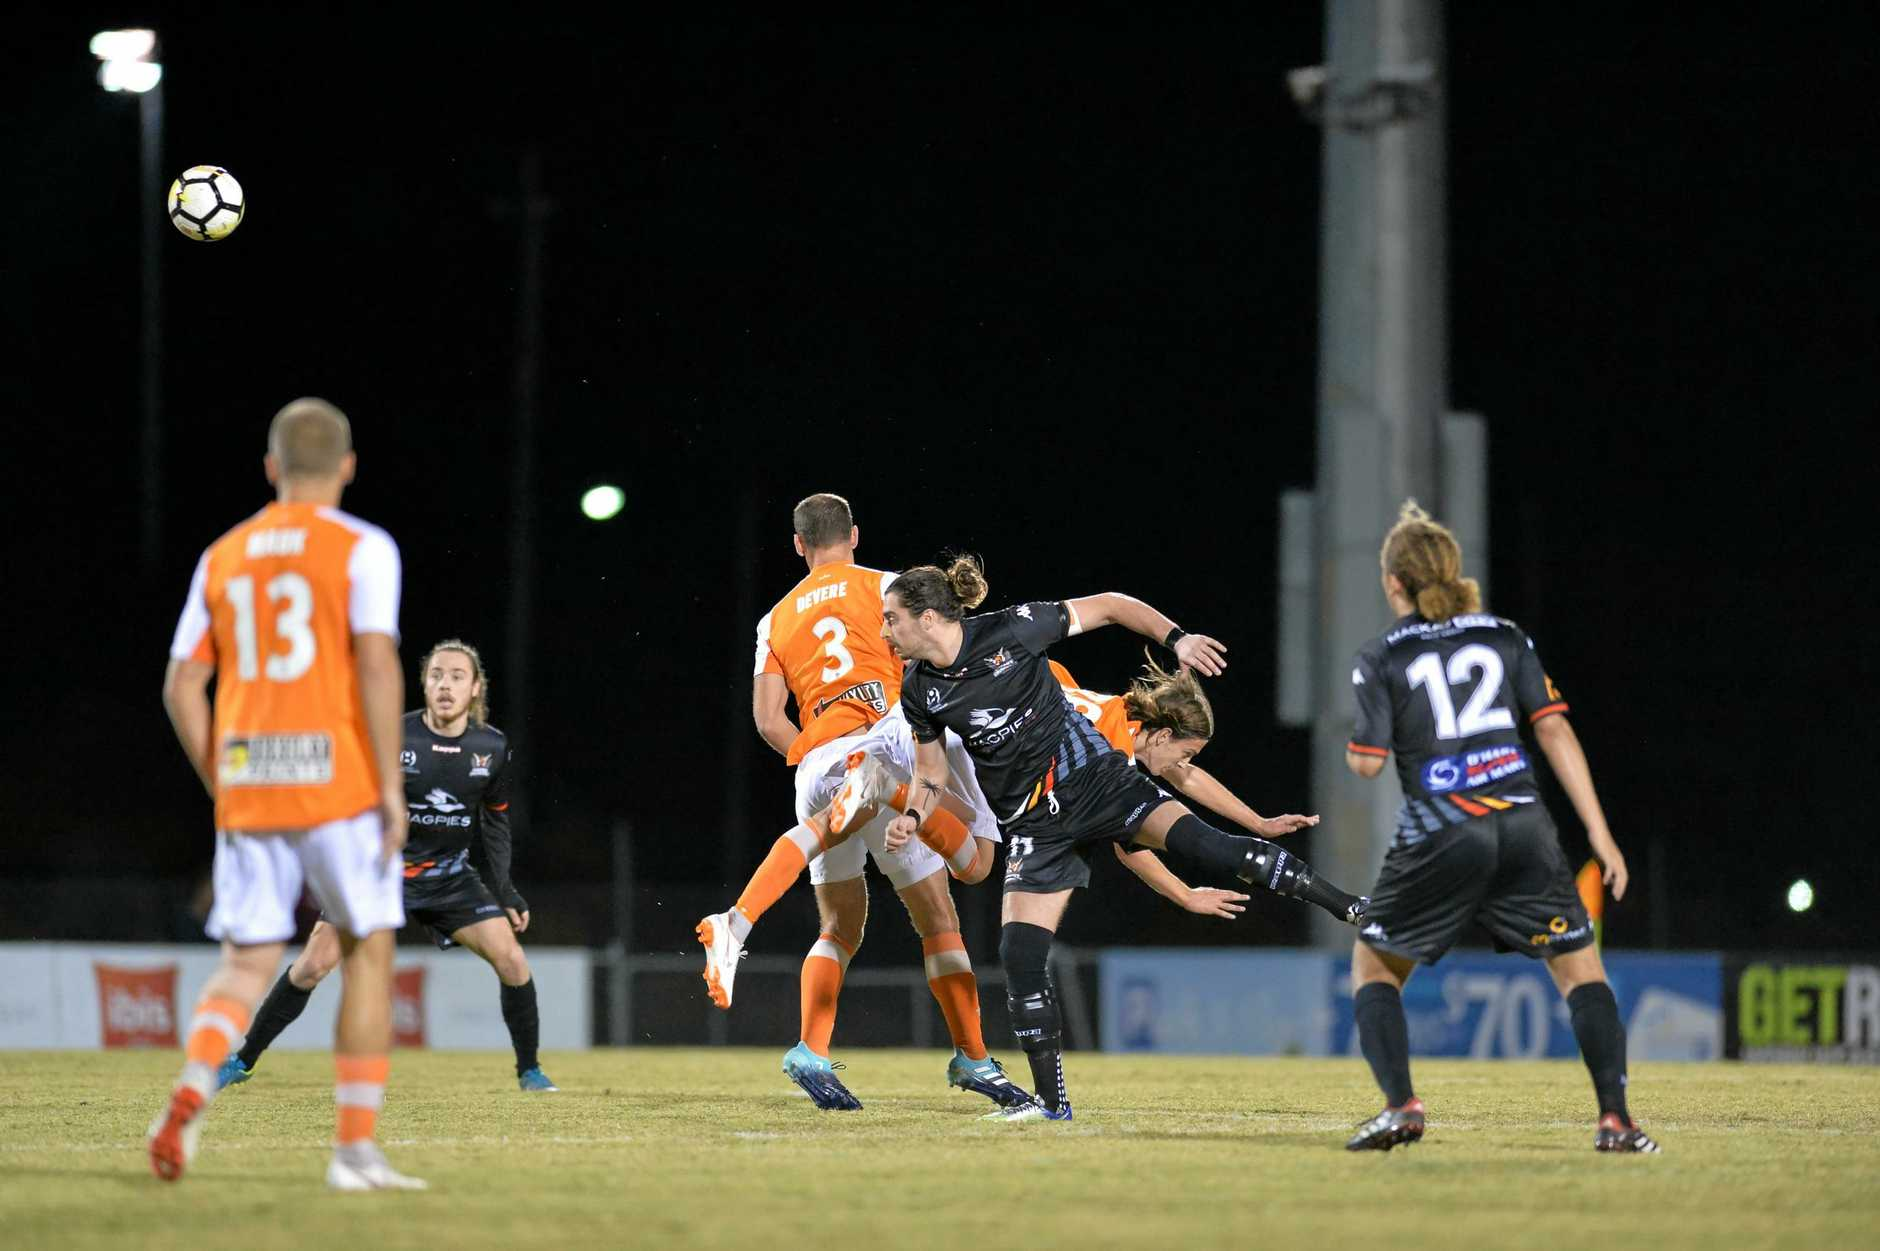 Brisbane Roar versus Magpies Crusaders at Sologinkin Oval, Mackay on Thursday, July 12, 2018.